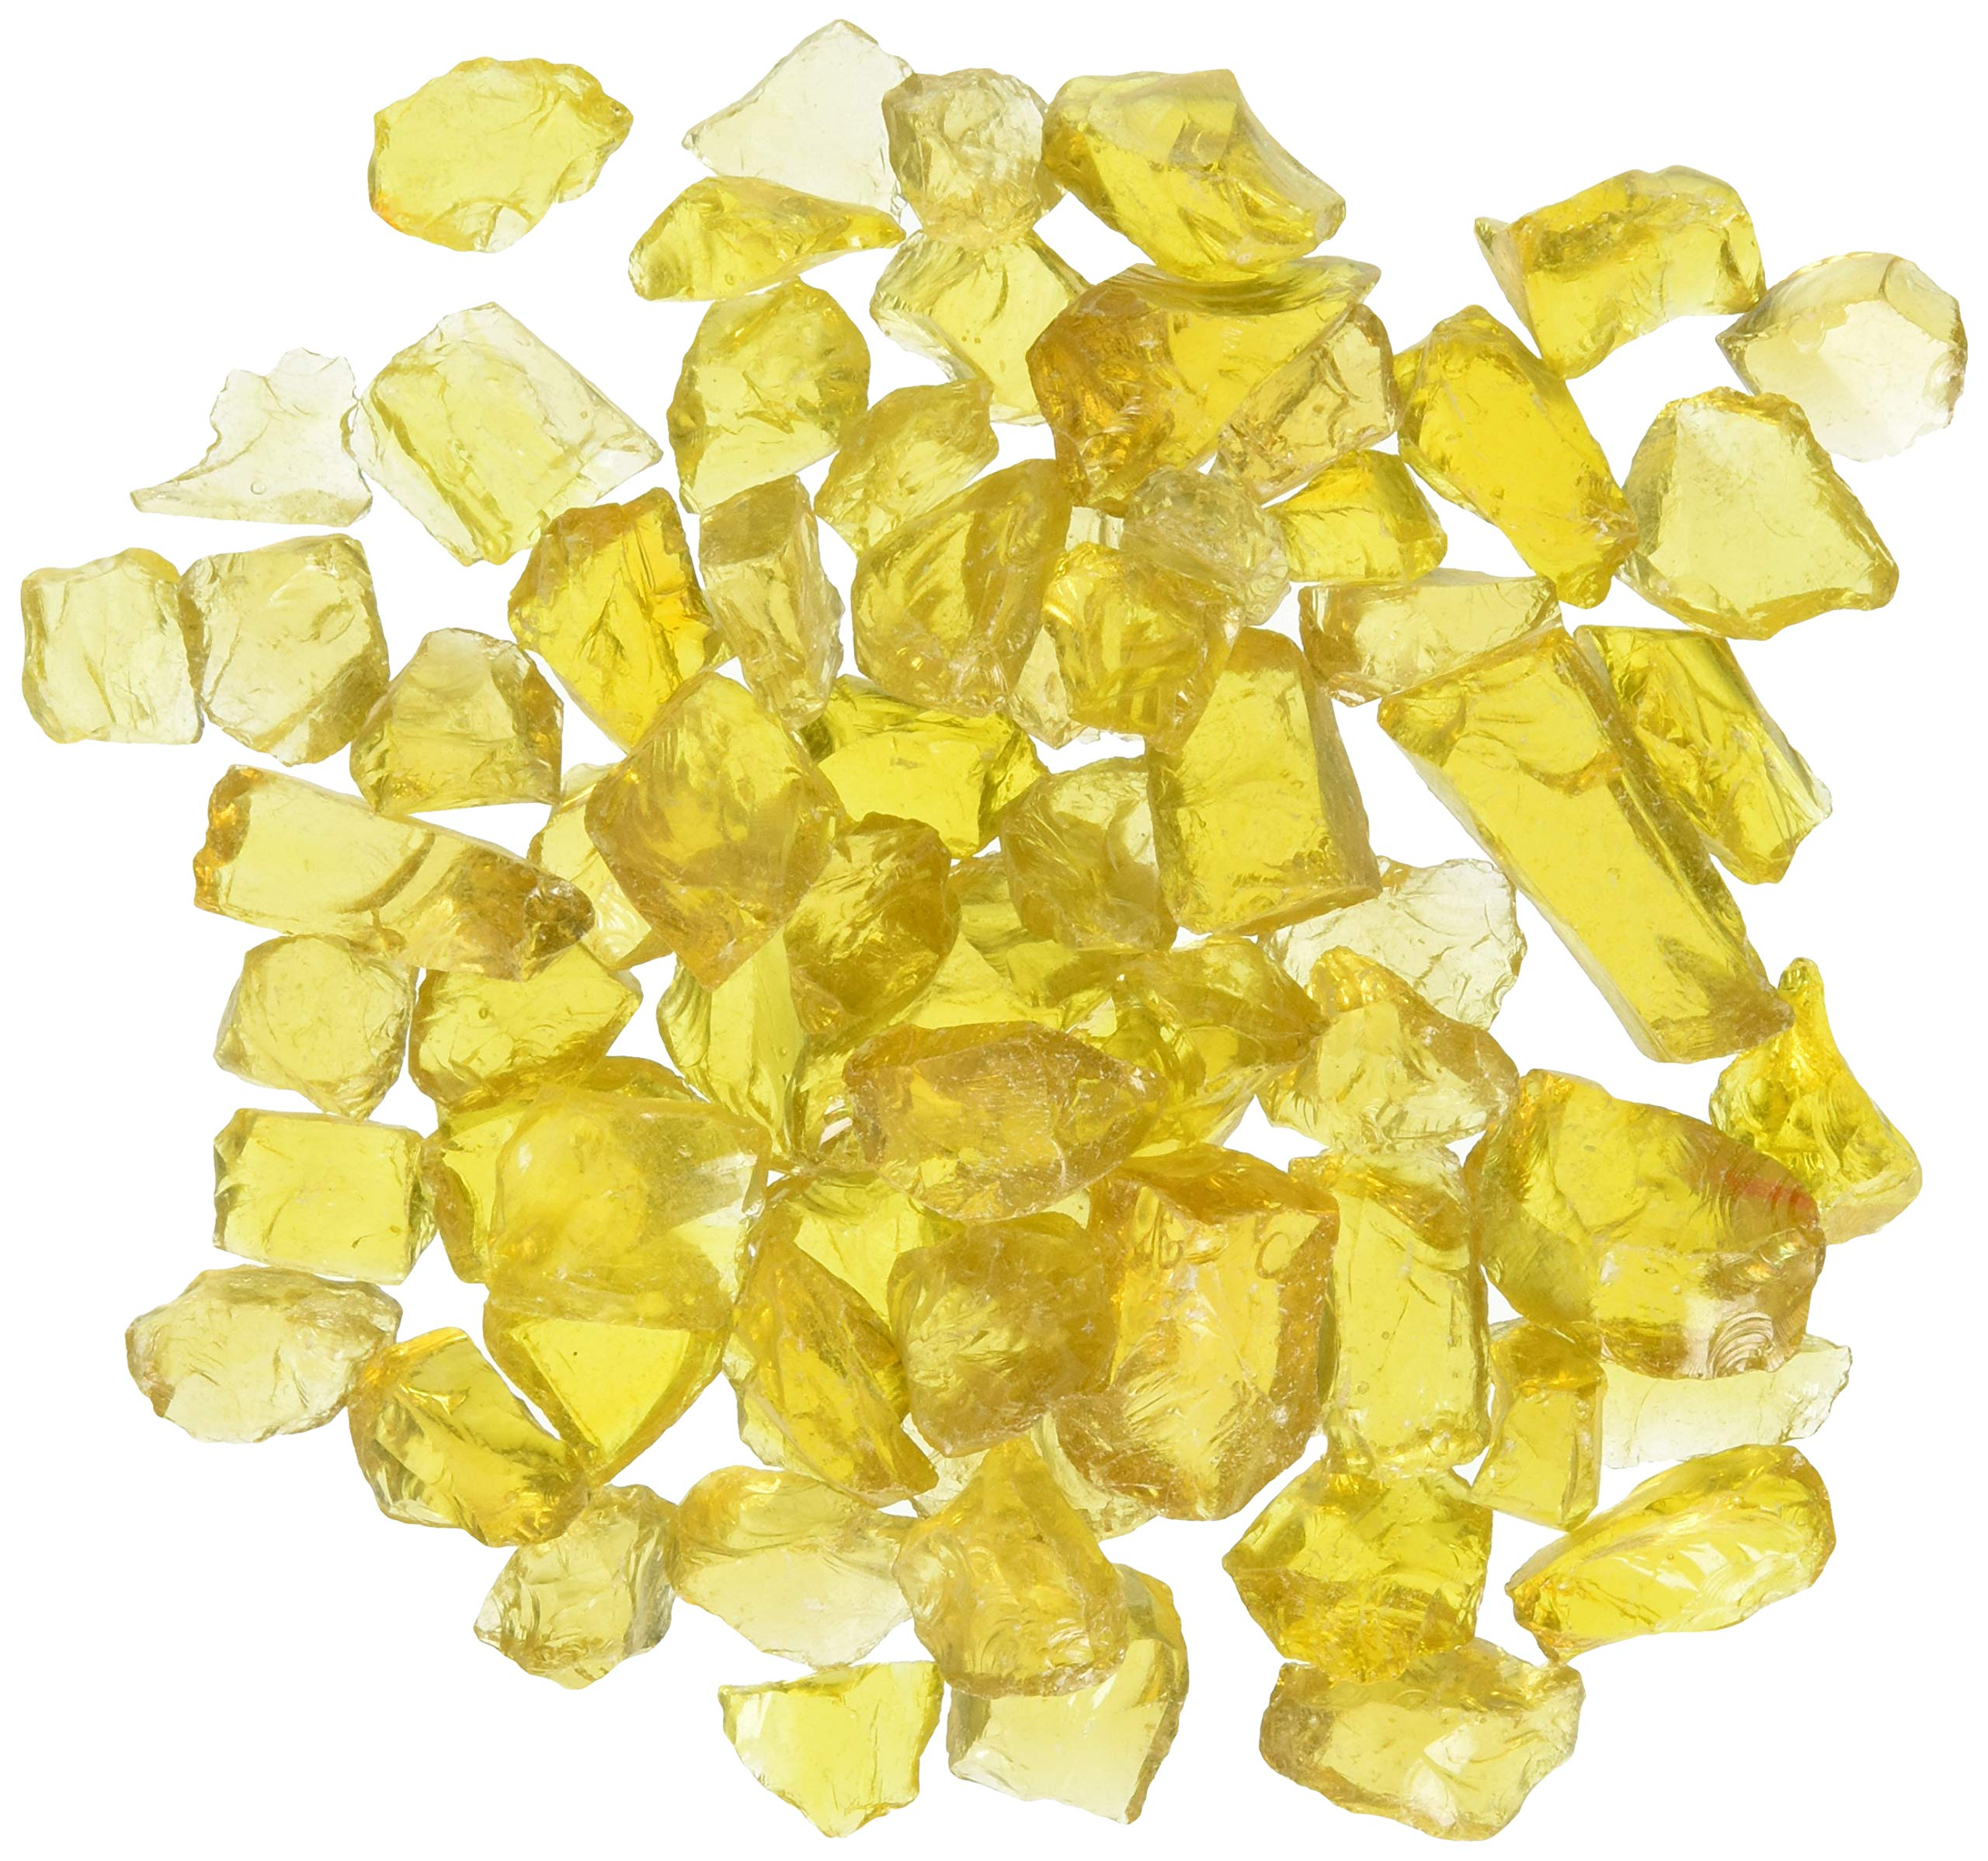 American Fireglass 9 to 12mm Fire Pit and Outdoor Fireplace Glass, Small, 10-Pound, Yellow by American Fireglass